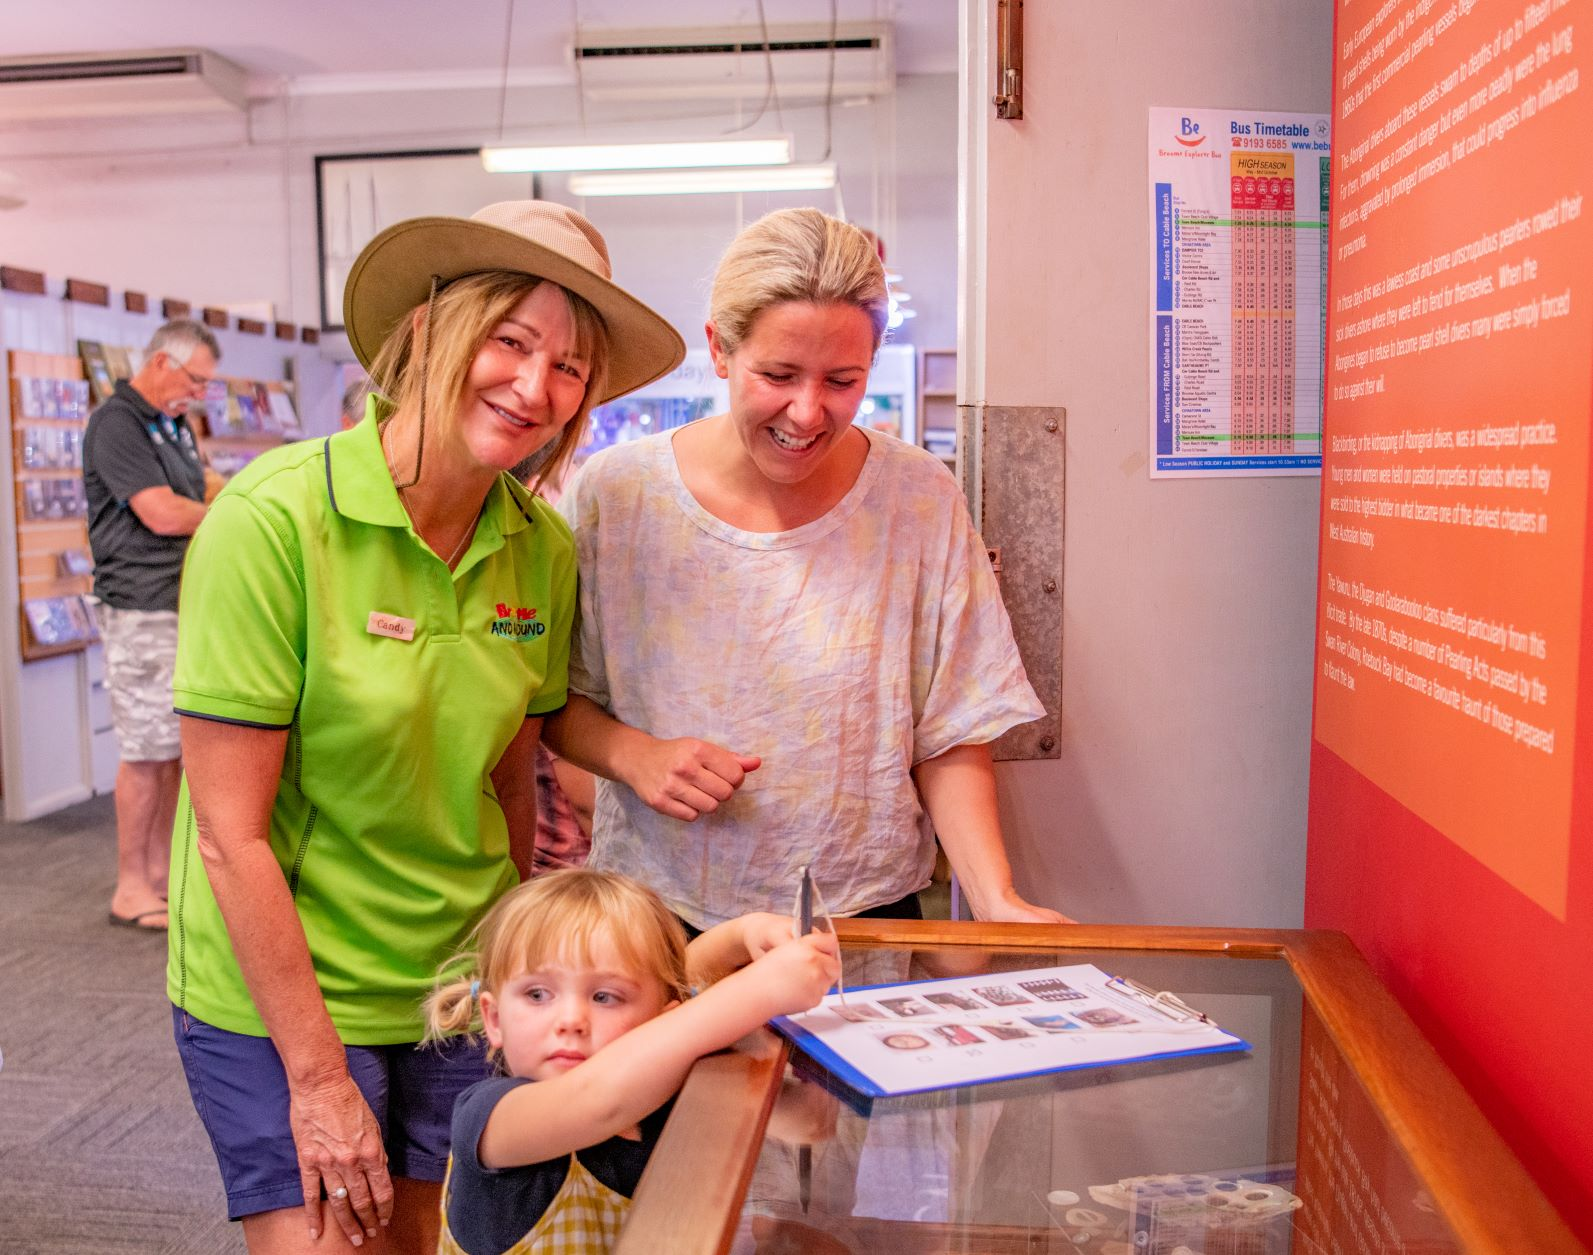 Broome and Around SPECIAL :  Broome 3 in 1 Iconic Tour - Matso's Broome Brewery,  Broome Museum , Malcolm Douglas Crocodile Feeding Tour